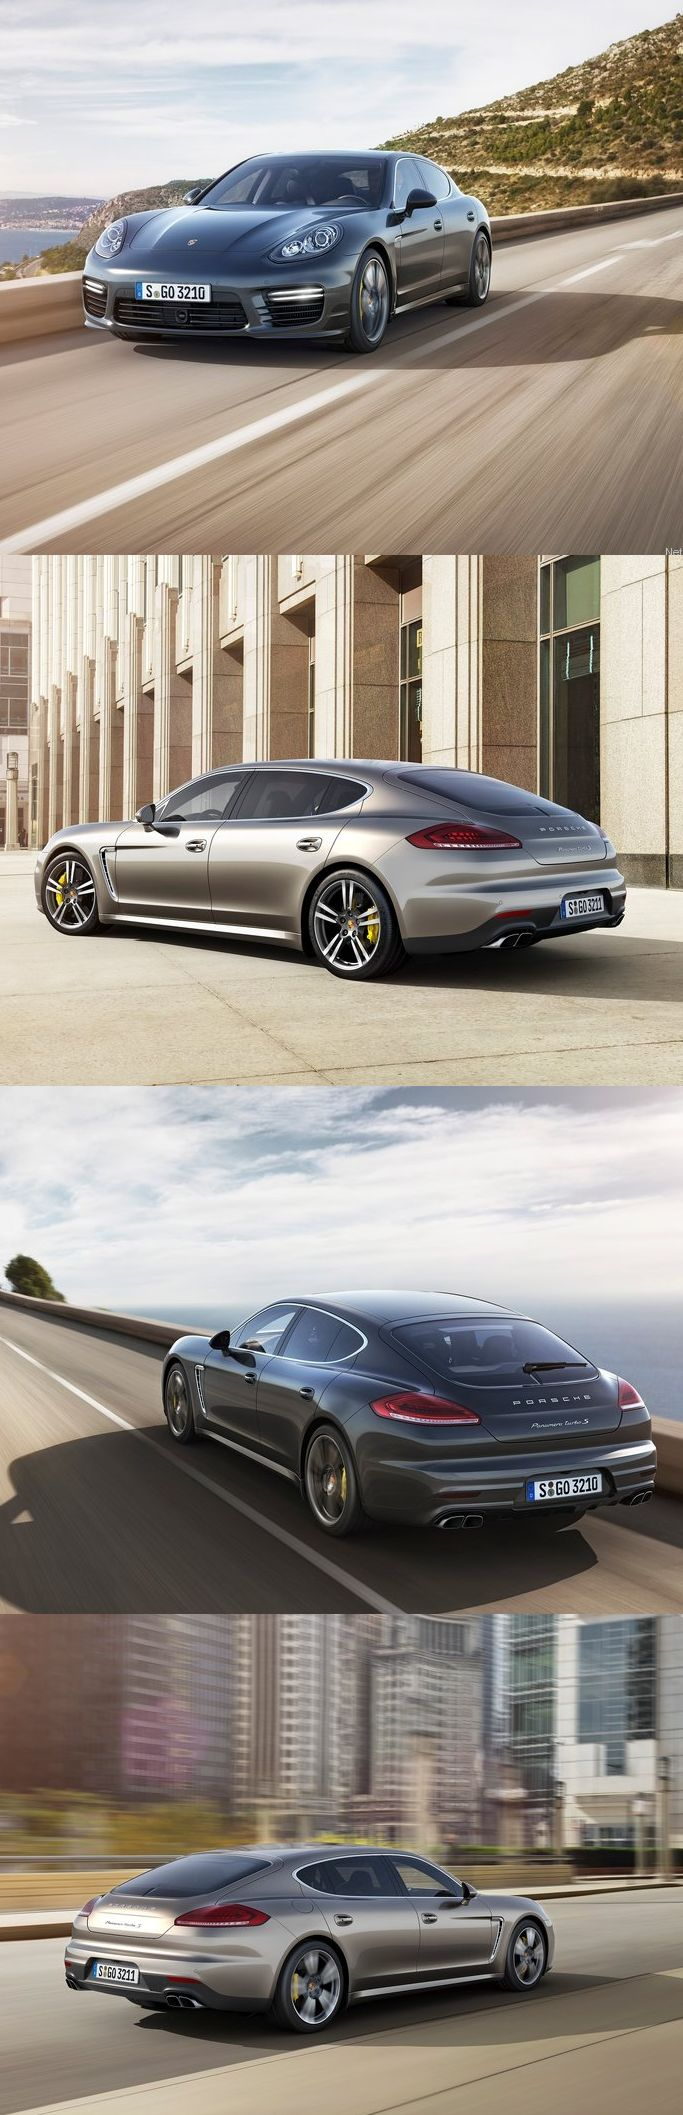 Porsche revela Panamera Turbo S. With four doors, it can ALMOST be justified as a family car. That goes 130 MPH....